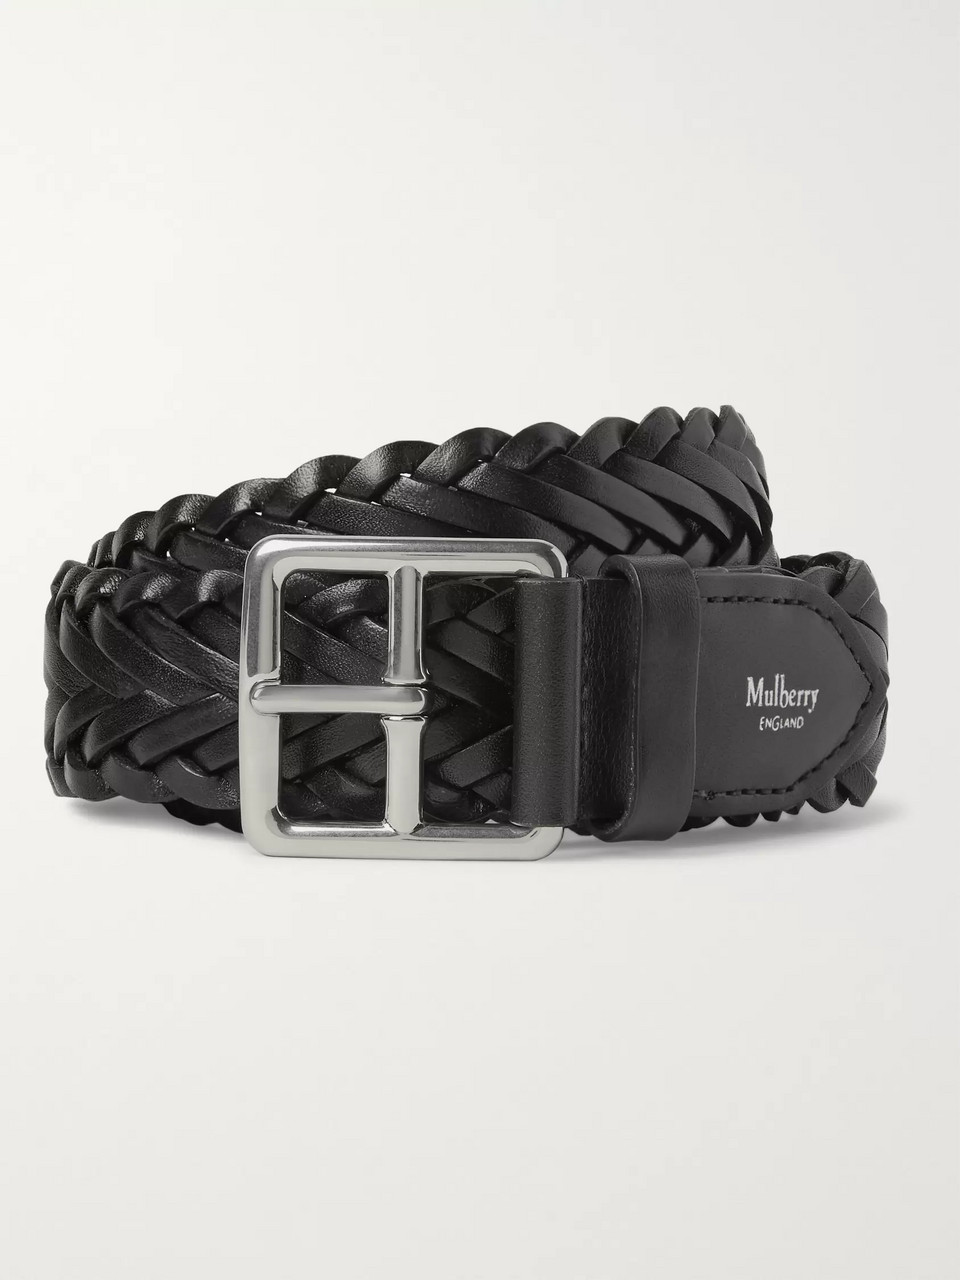 Mulberry 4cm Black Woven Leather Belt